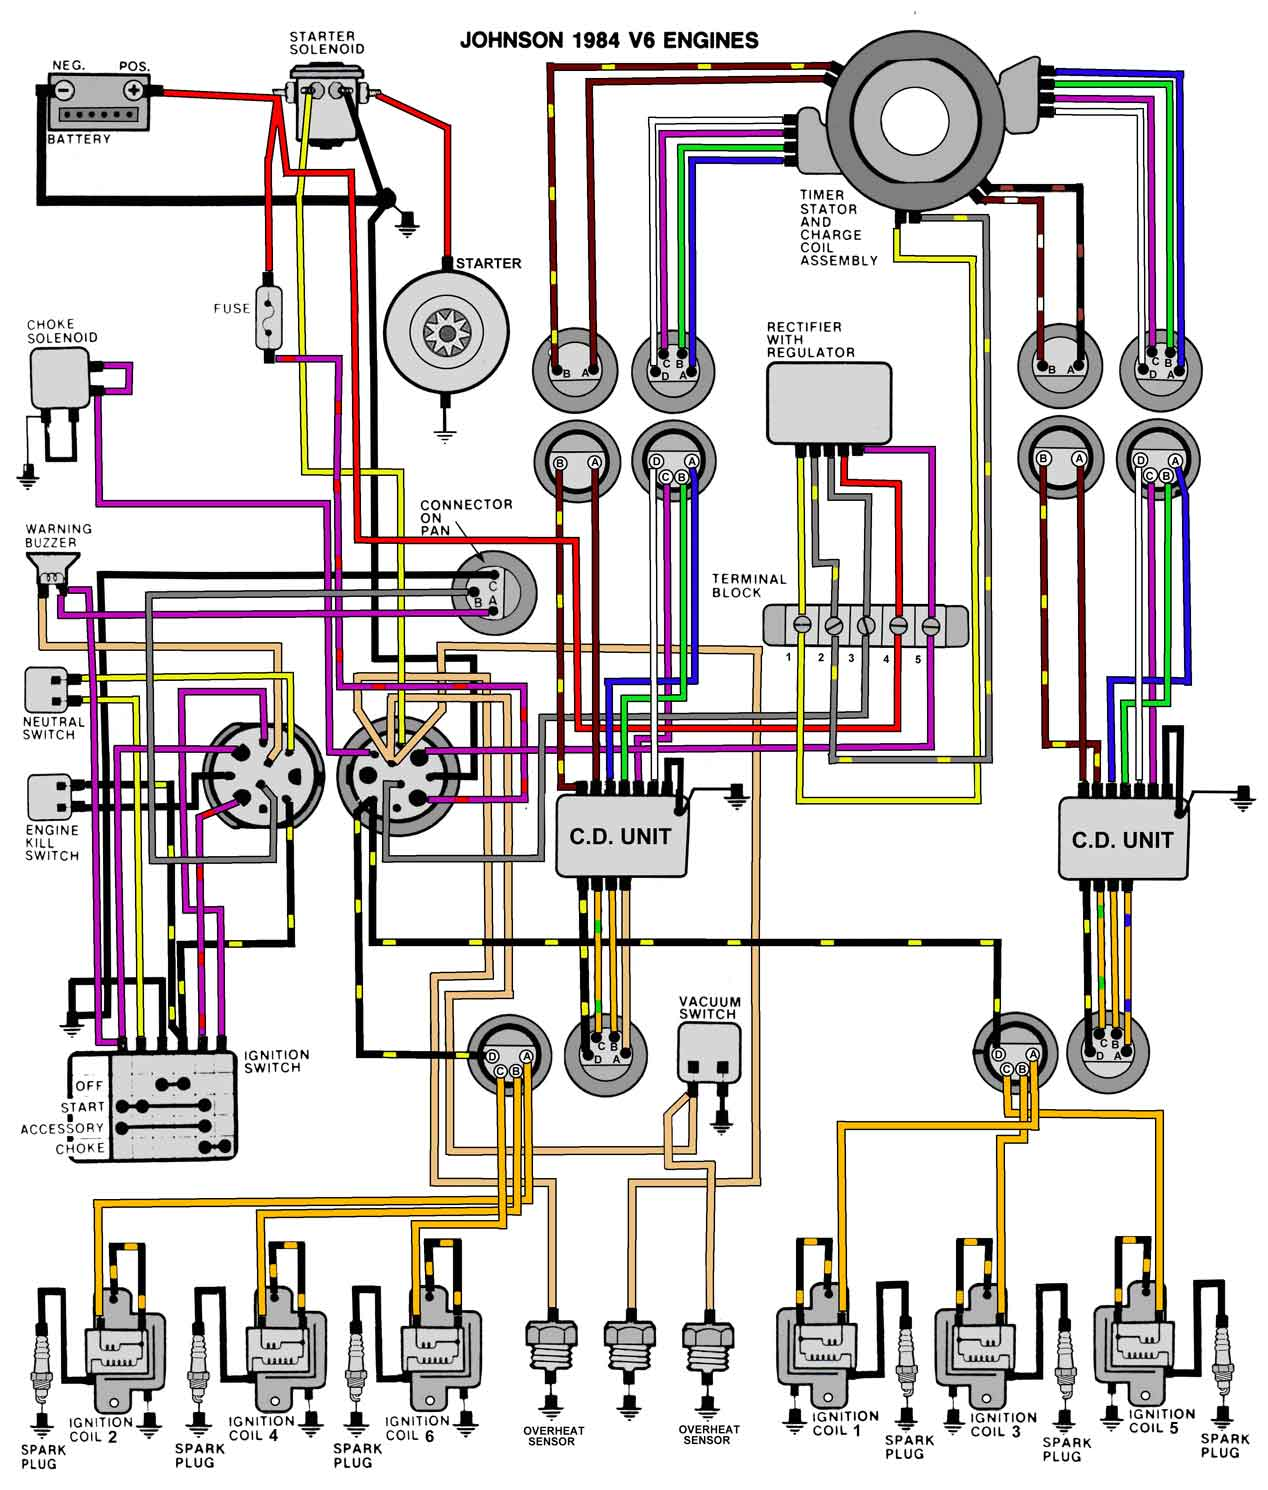 61A82 Johnson Boat Motor Wiring Diagram | Digital Resources on marine wiring set up, alternator wire diagram, ac alternating current diagram, cooling system diagram, marine battery switch wiring, marine amp wiring, marine cooling system crossover schematic, marine oil pressure safety switch wiring, car alternator diagram, gm alternator diagram, marine wiring schematic, marine alternator parts, marine alternators heavy duty, marine battery switch diagram, perkins diesel engine diagram, marine alternator voltage regulator, alternator parts diagram, marine fuel gauge diagram, marine charging system diagram, marine diesel wiring-diagram,